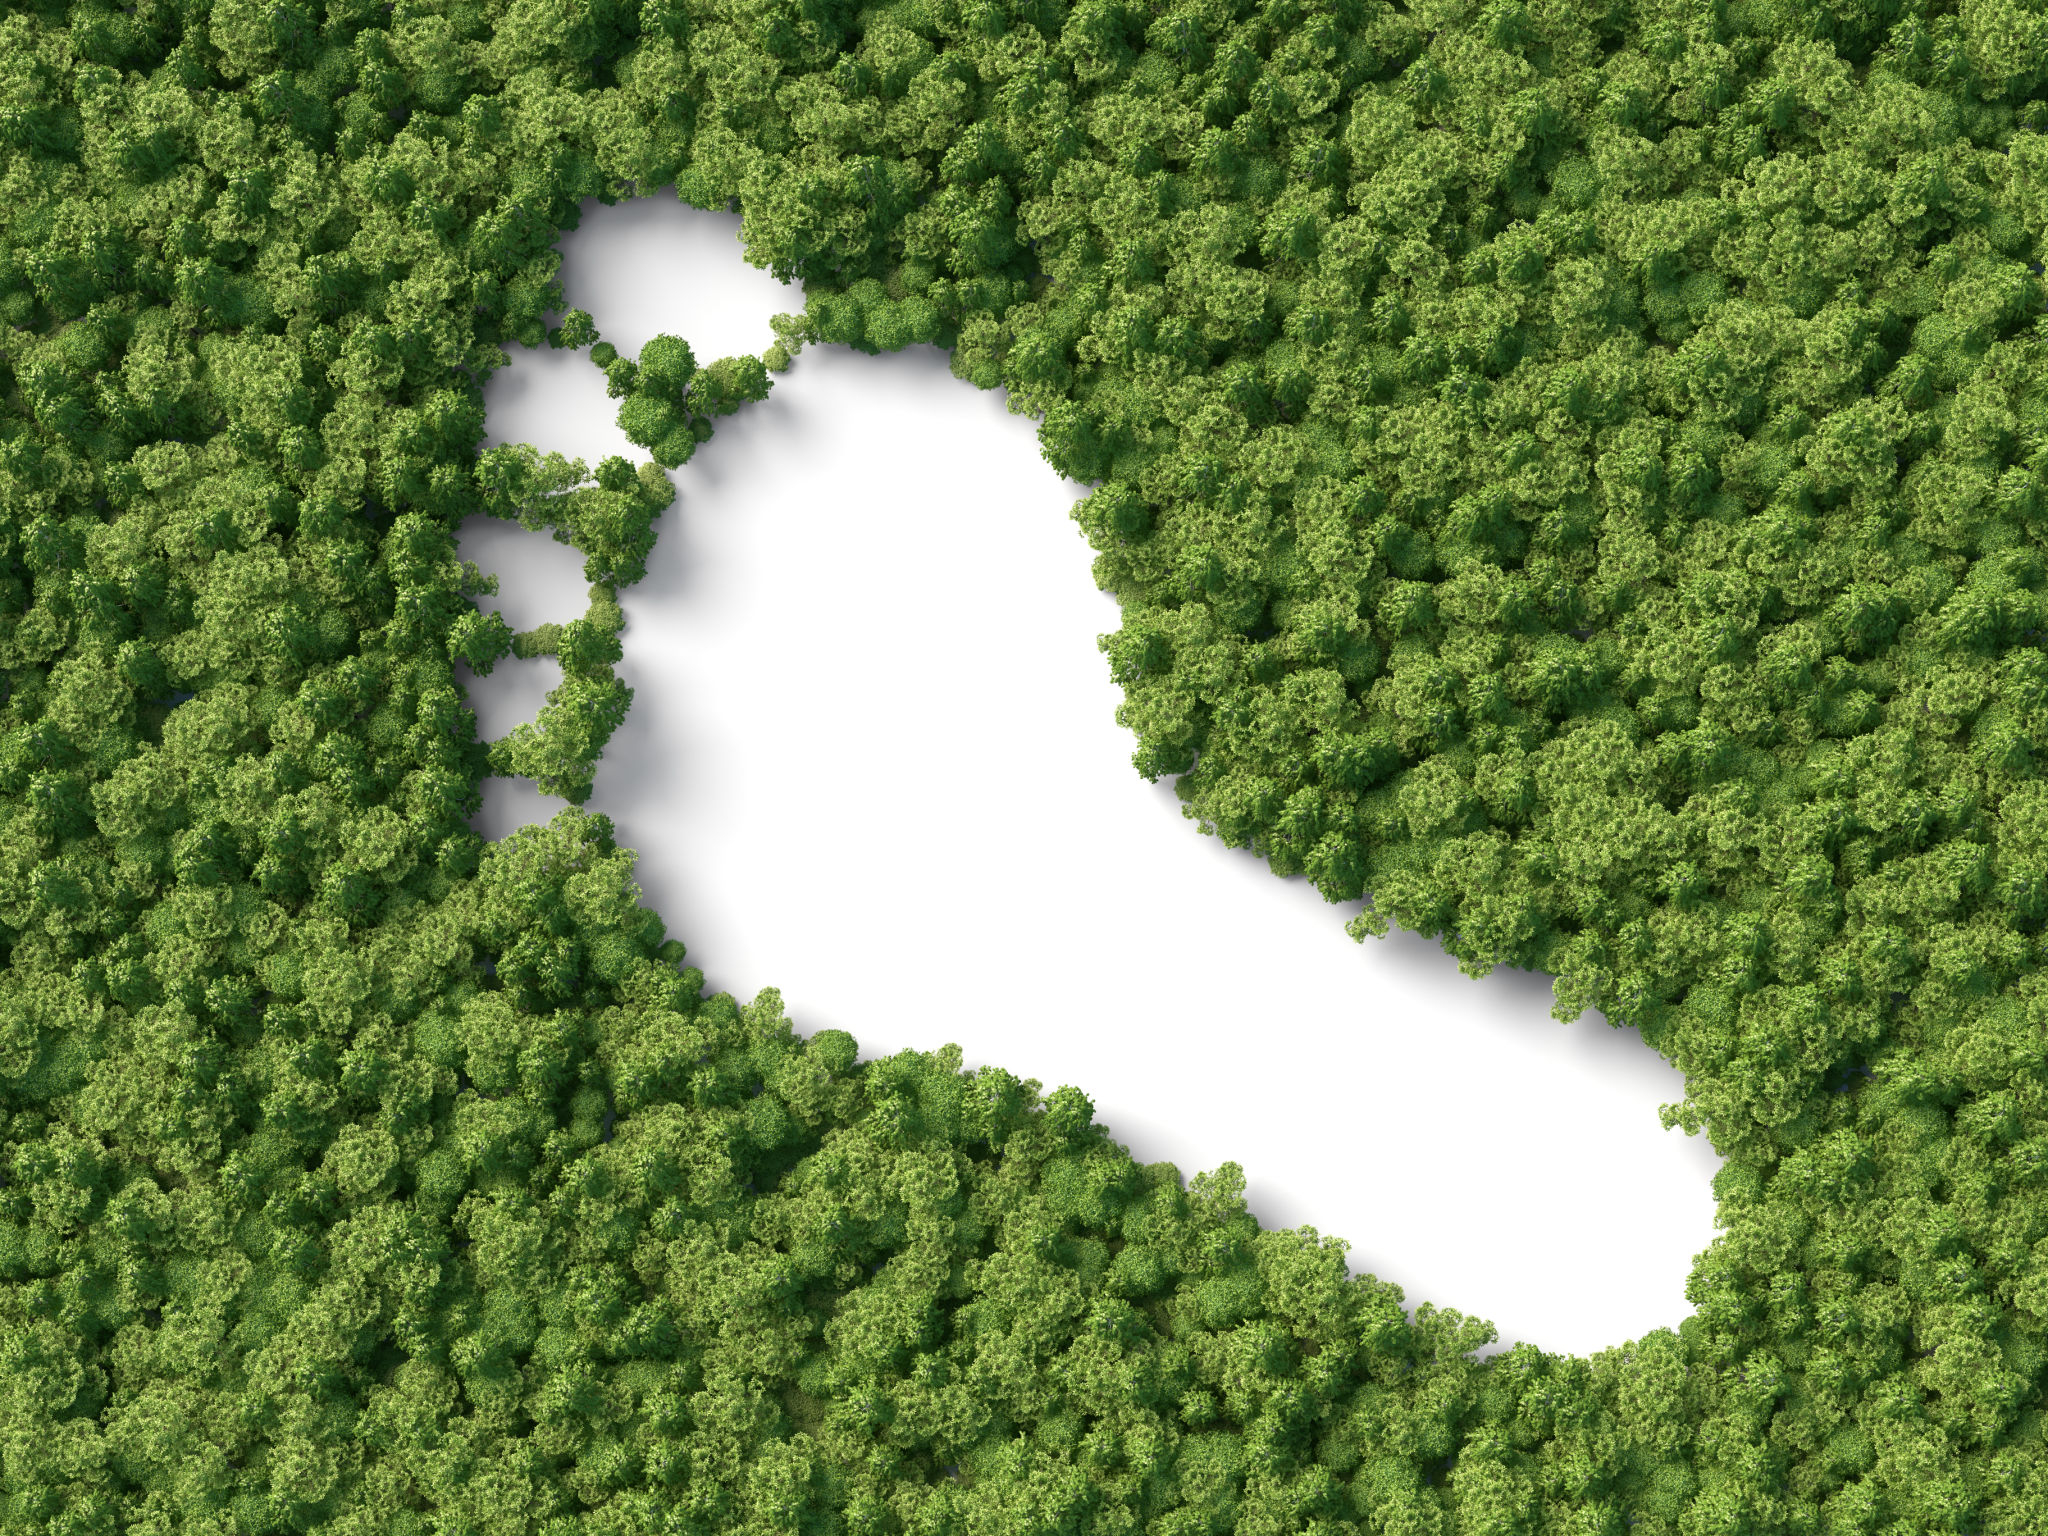 Print on demand leads to conscious shopping and reducing carbon footprint? How?